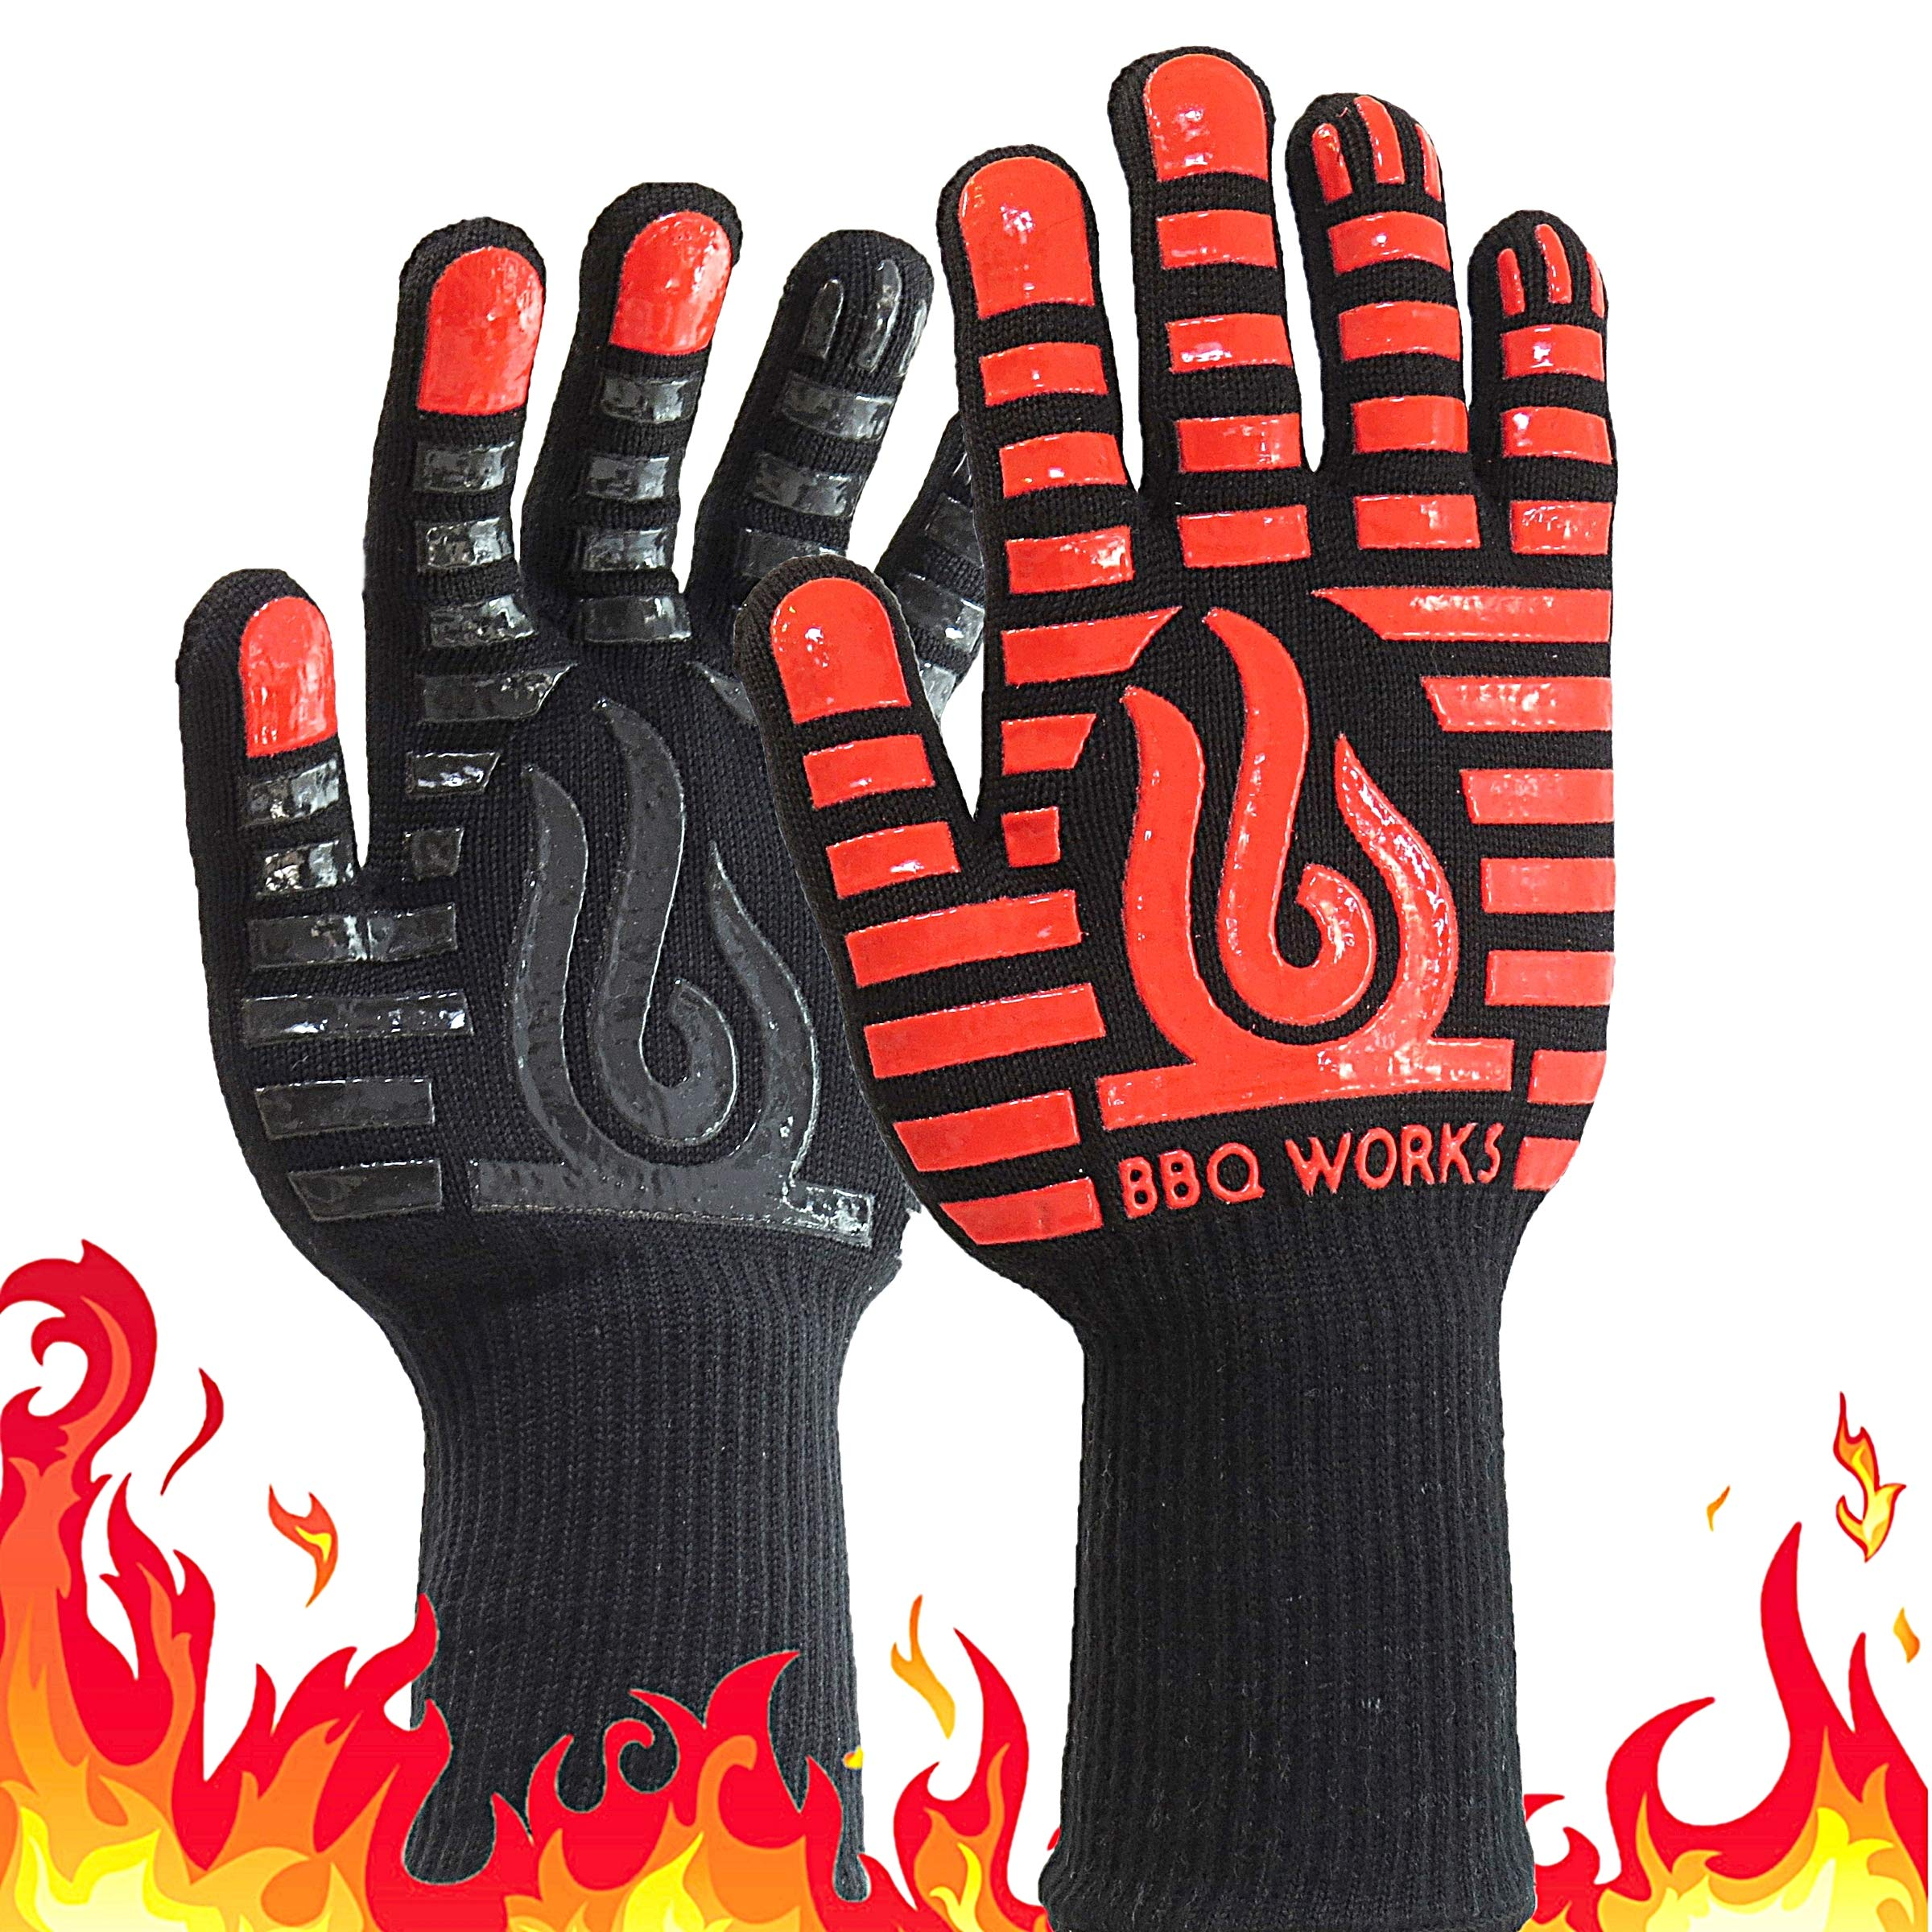 BBQ Works Grill Gloves, Extreme Heat Resistant Gloves to 932°F, Wider Silicone Strips for Extreme Protection, Wrist Safety, Comfortable Grilling Gloves, Use for BBQ, Grill and Oven. Red/Black by BBQ Works